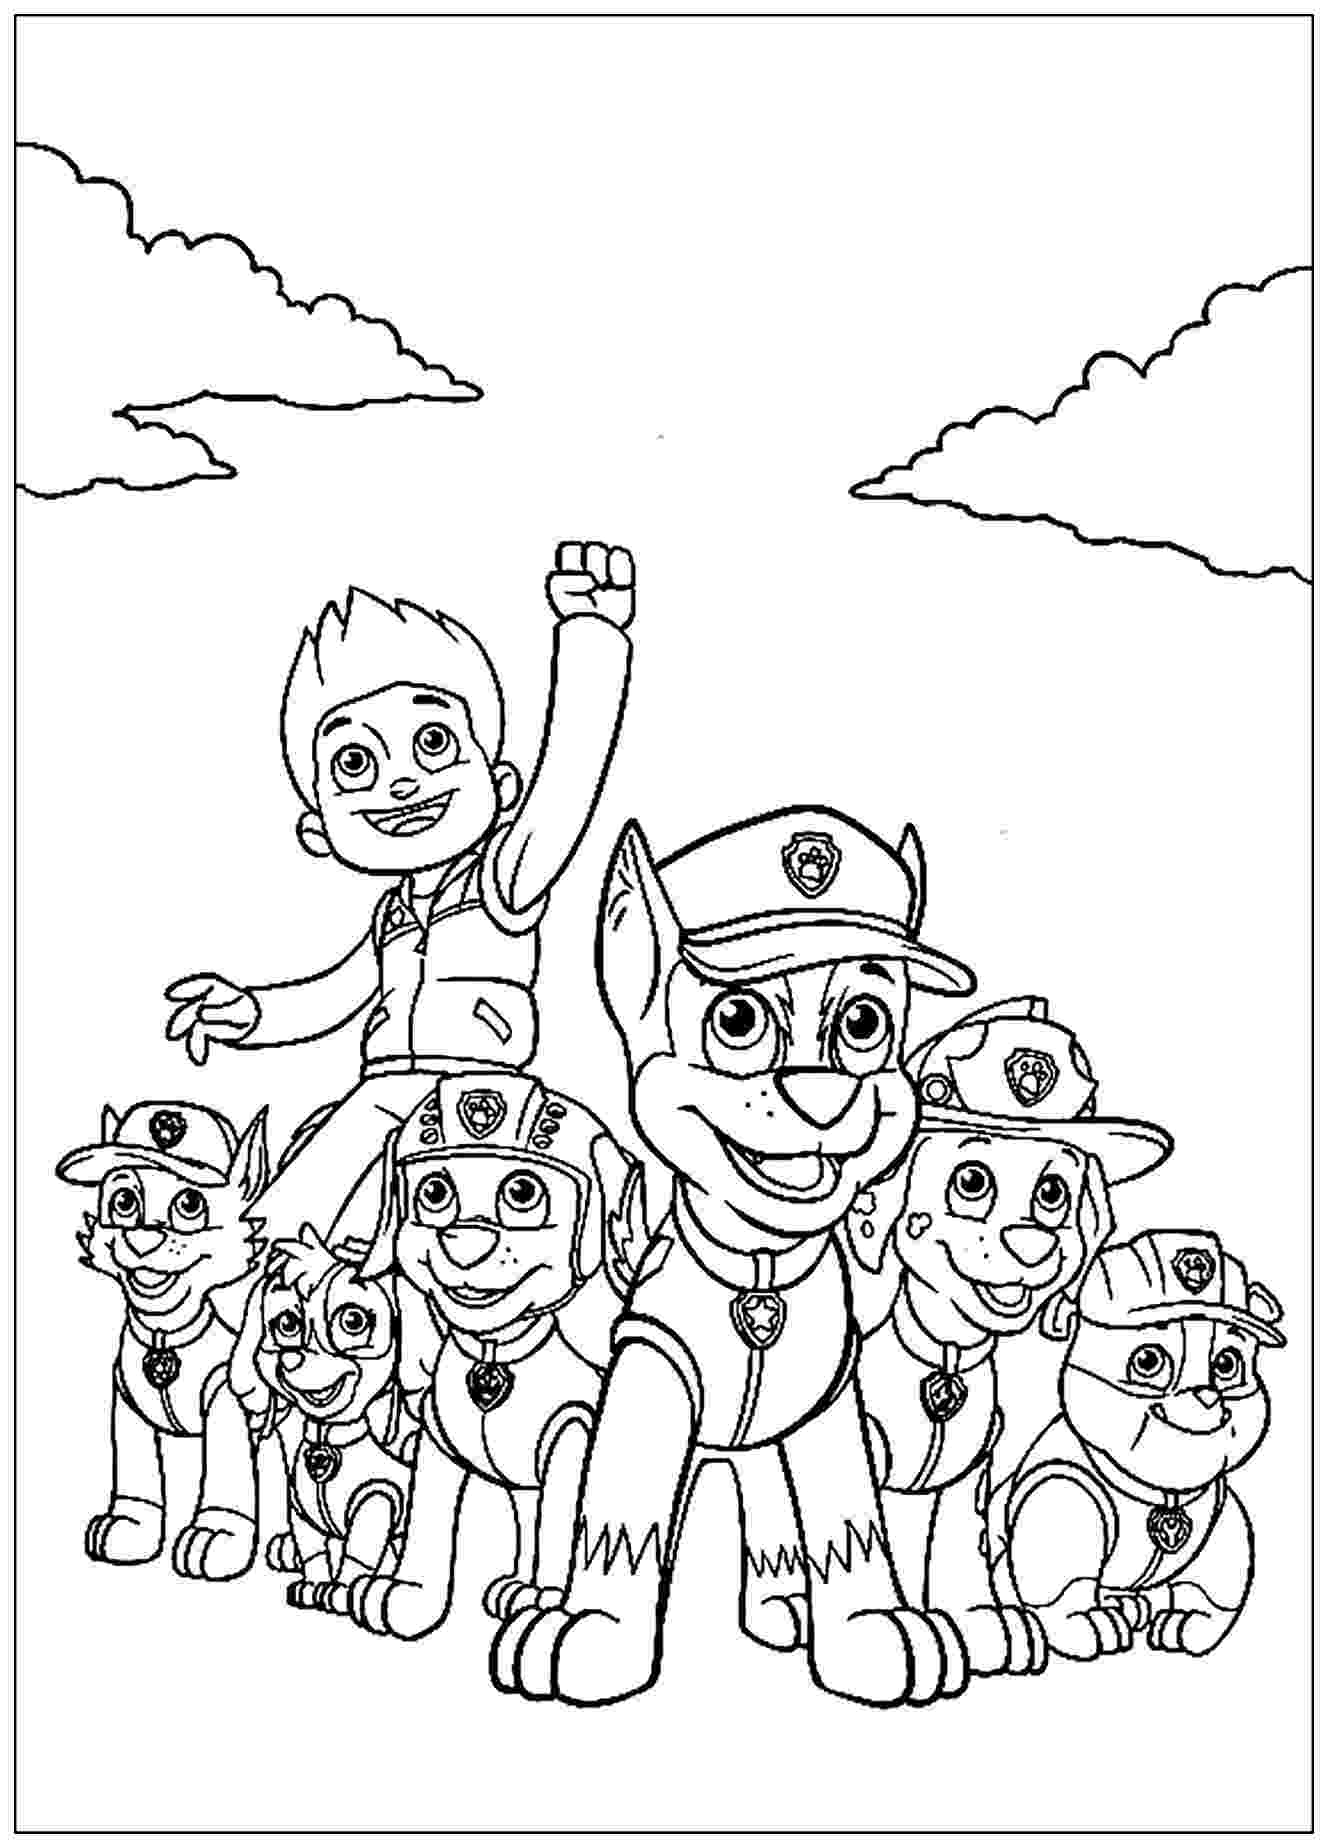 paw patrol coloriage chase paw patrol coloring pages to download and print for free patrol paw coloriage